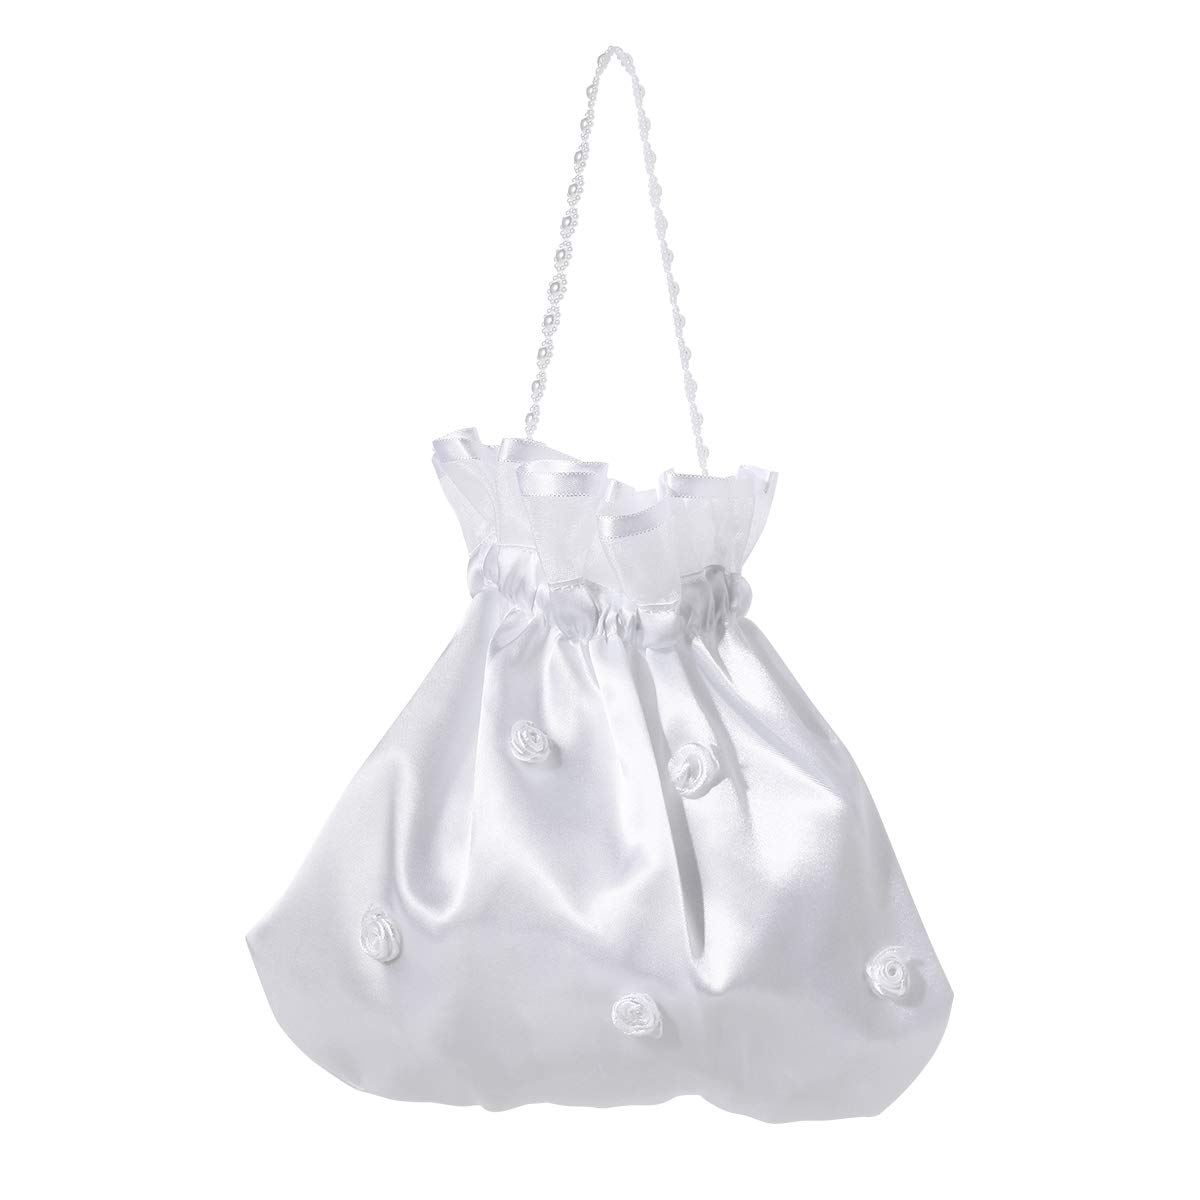 LUOEM Satin Bridal Wedding Money Bag White Bridal Bridesmaid Satin Flower Decorated Bag Handbag Pearl Dollar Dance Bridal Purse Wedding Favor by LUOEM (Image #1)